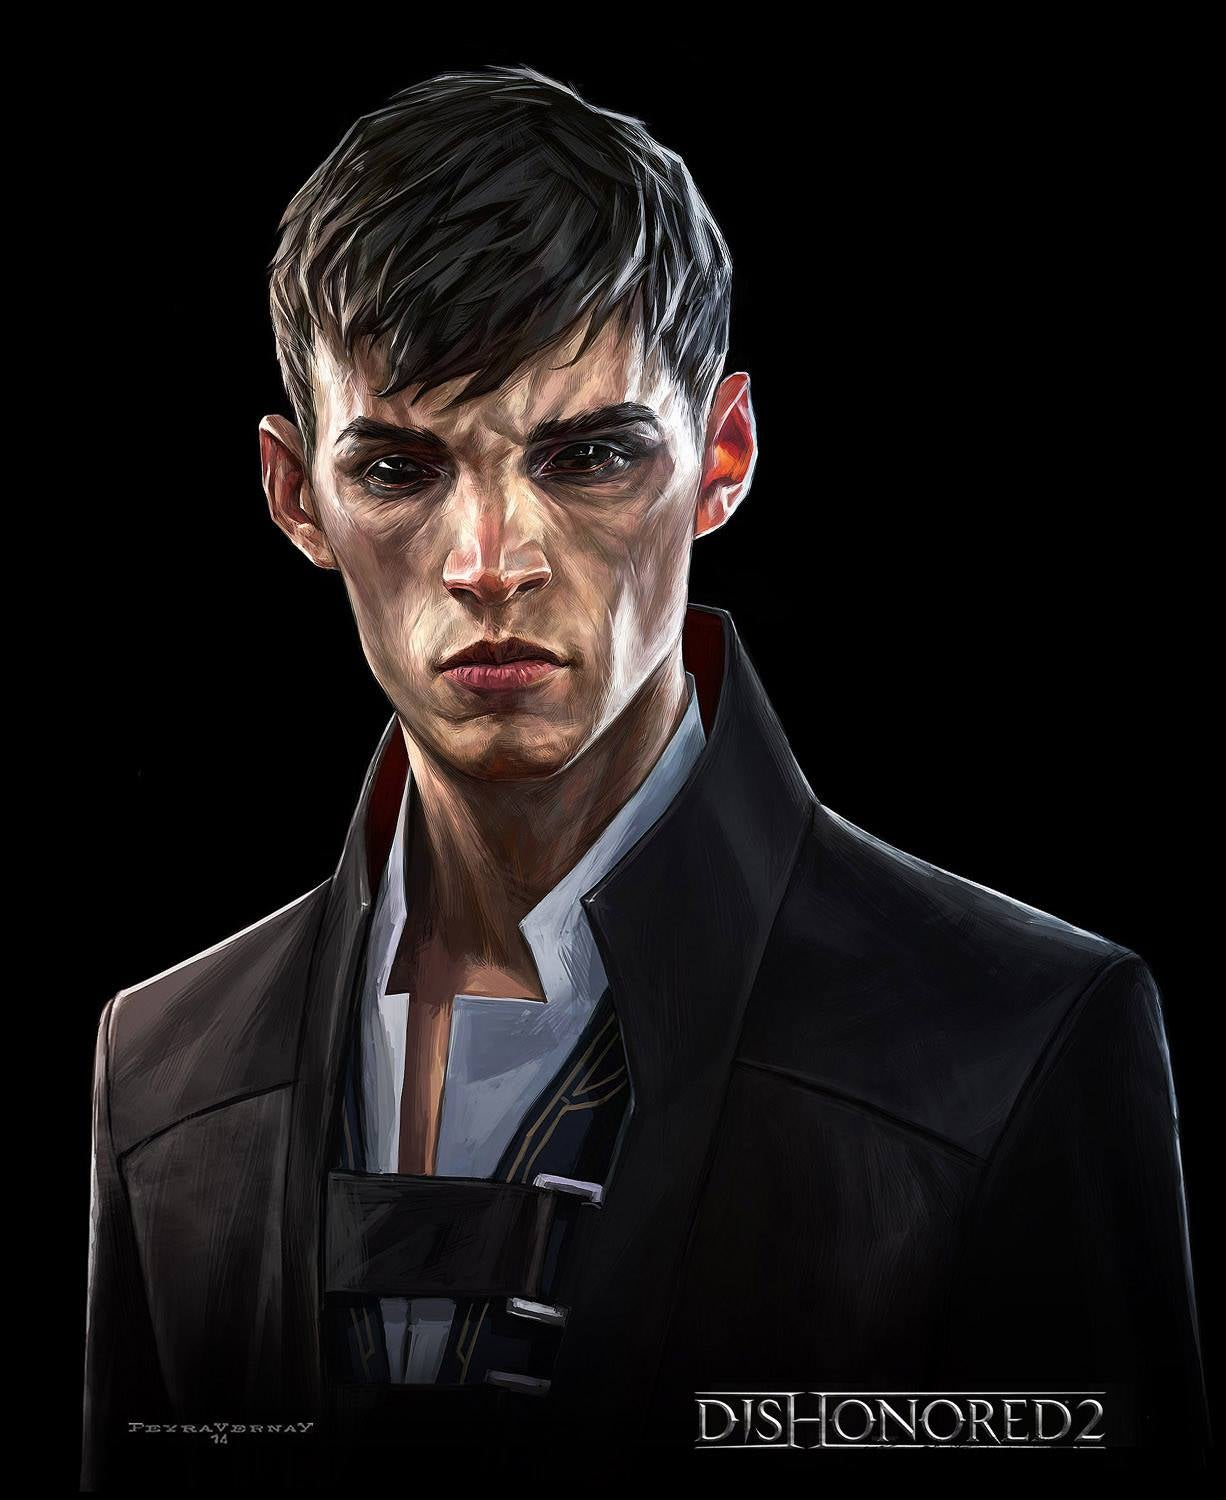 Rings The Outsider